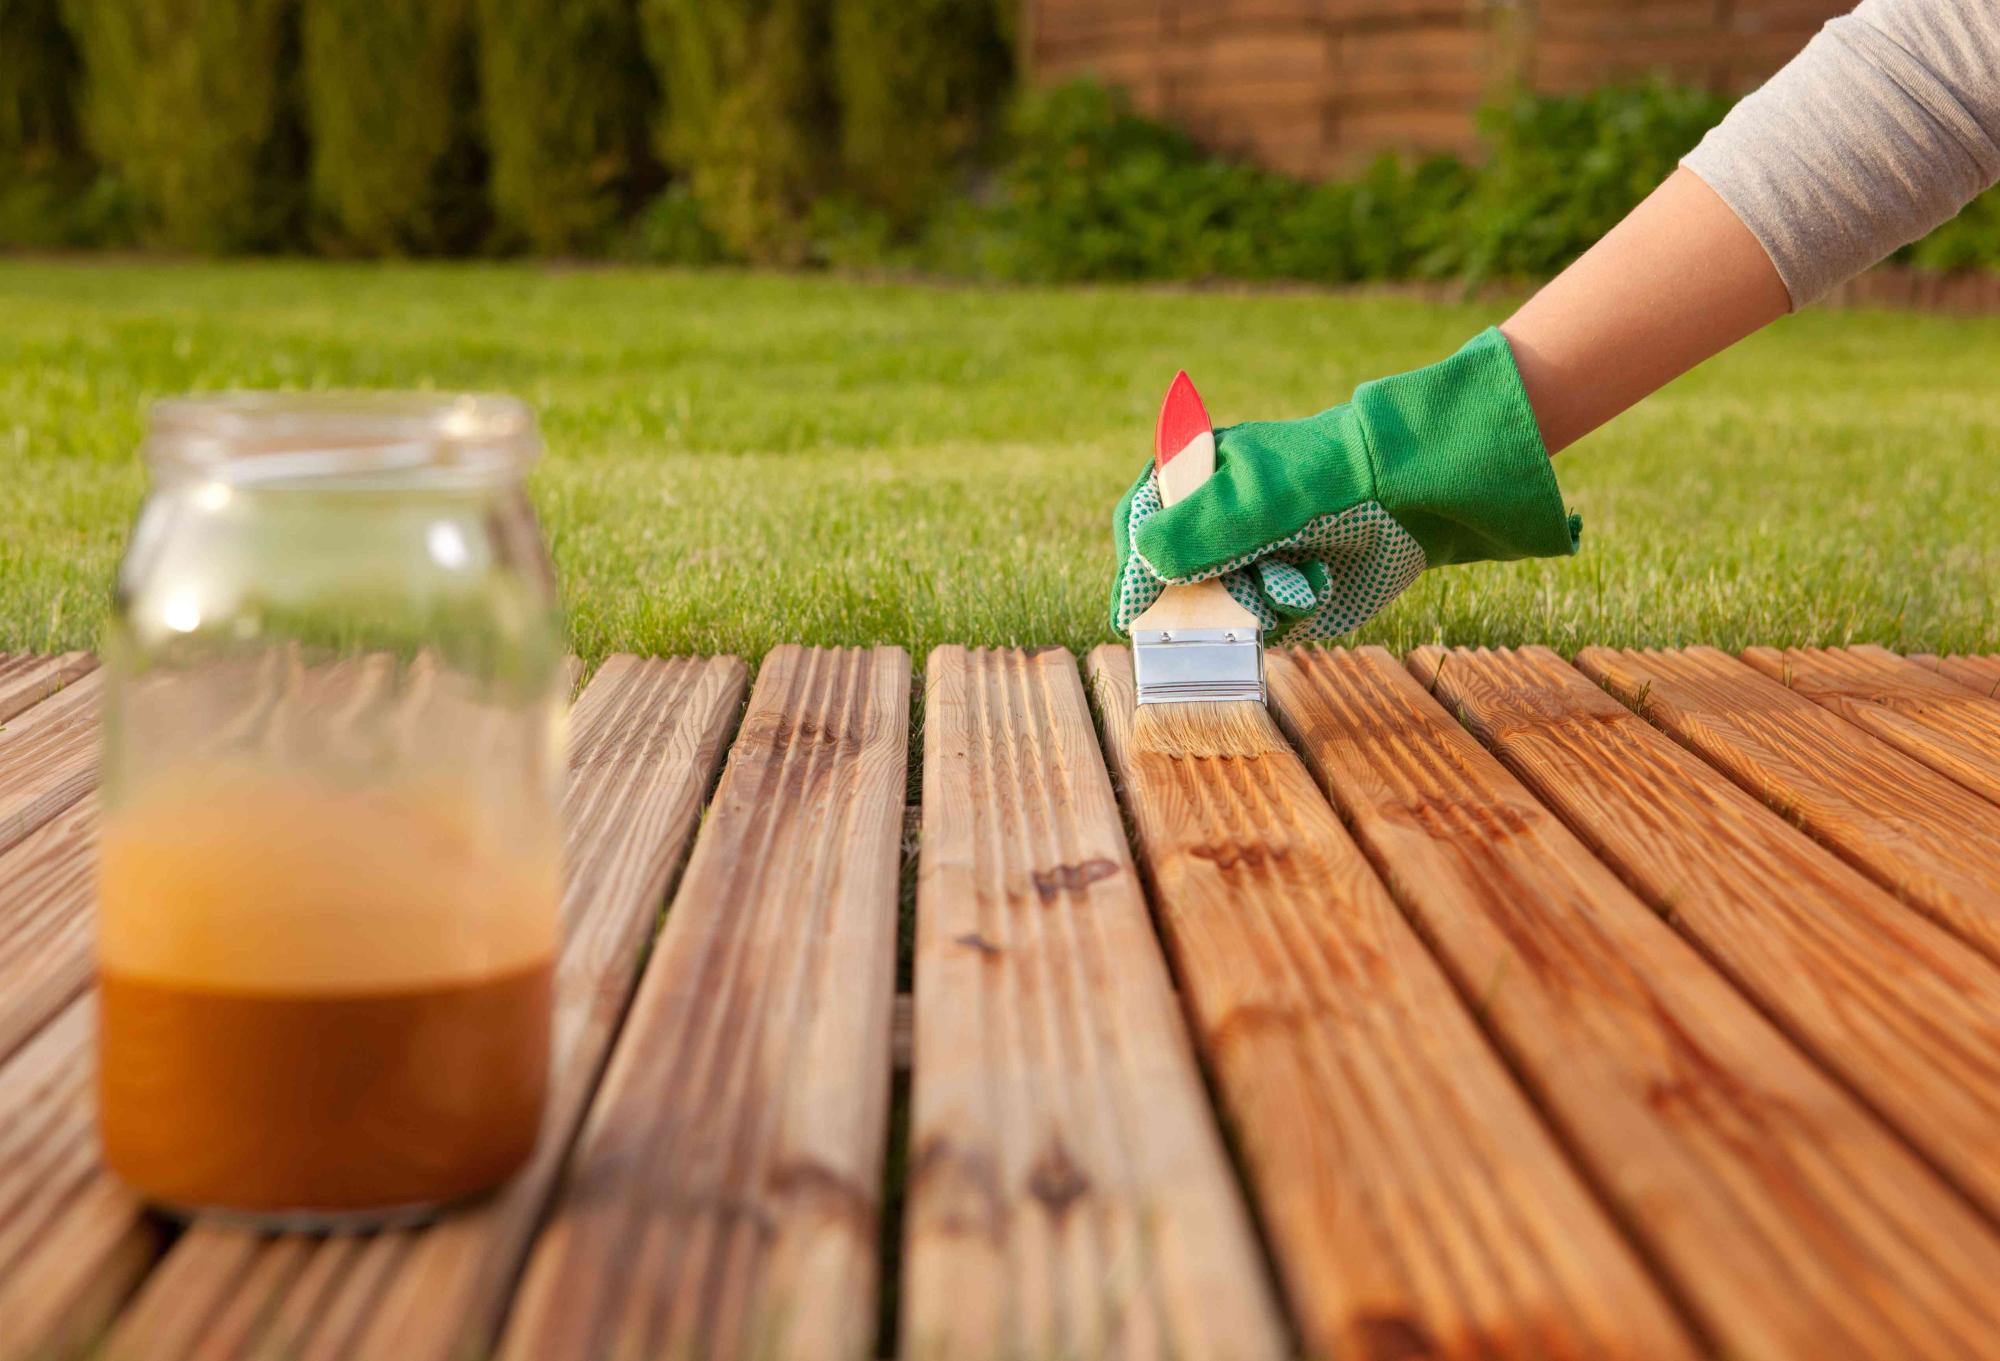 Cool Deck Sealer Review 2017 Deck Sealer Reviews Deck Sealer Canada Deck Sealer 2018 houzz-03 Best Deck Sealer